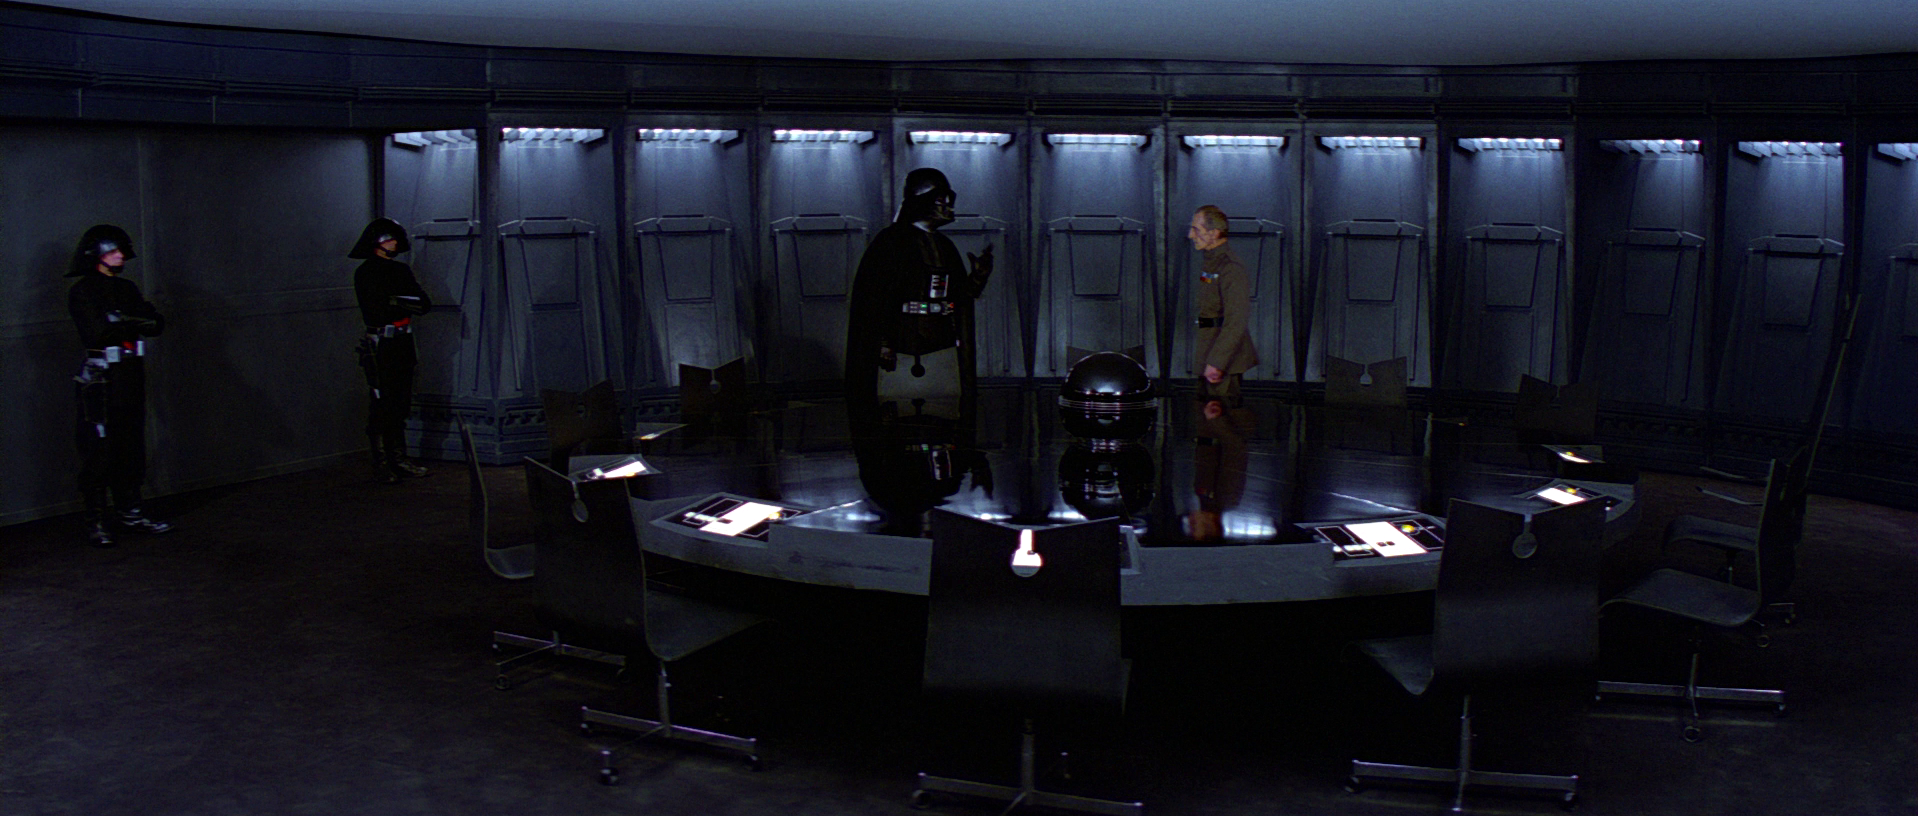 Officers In Death Star Conference Room